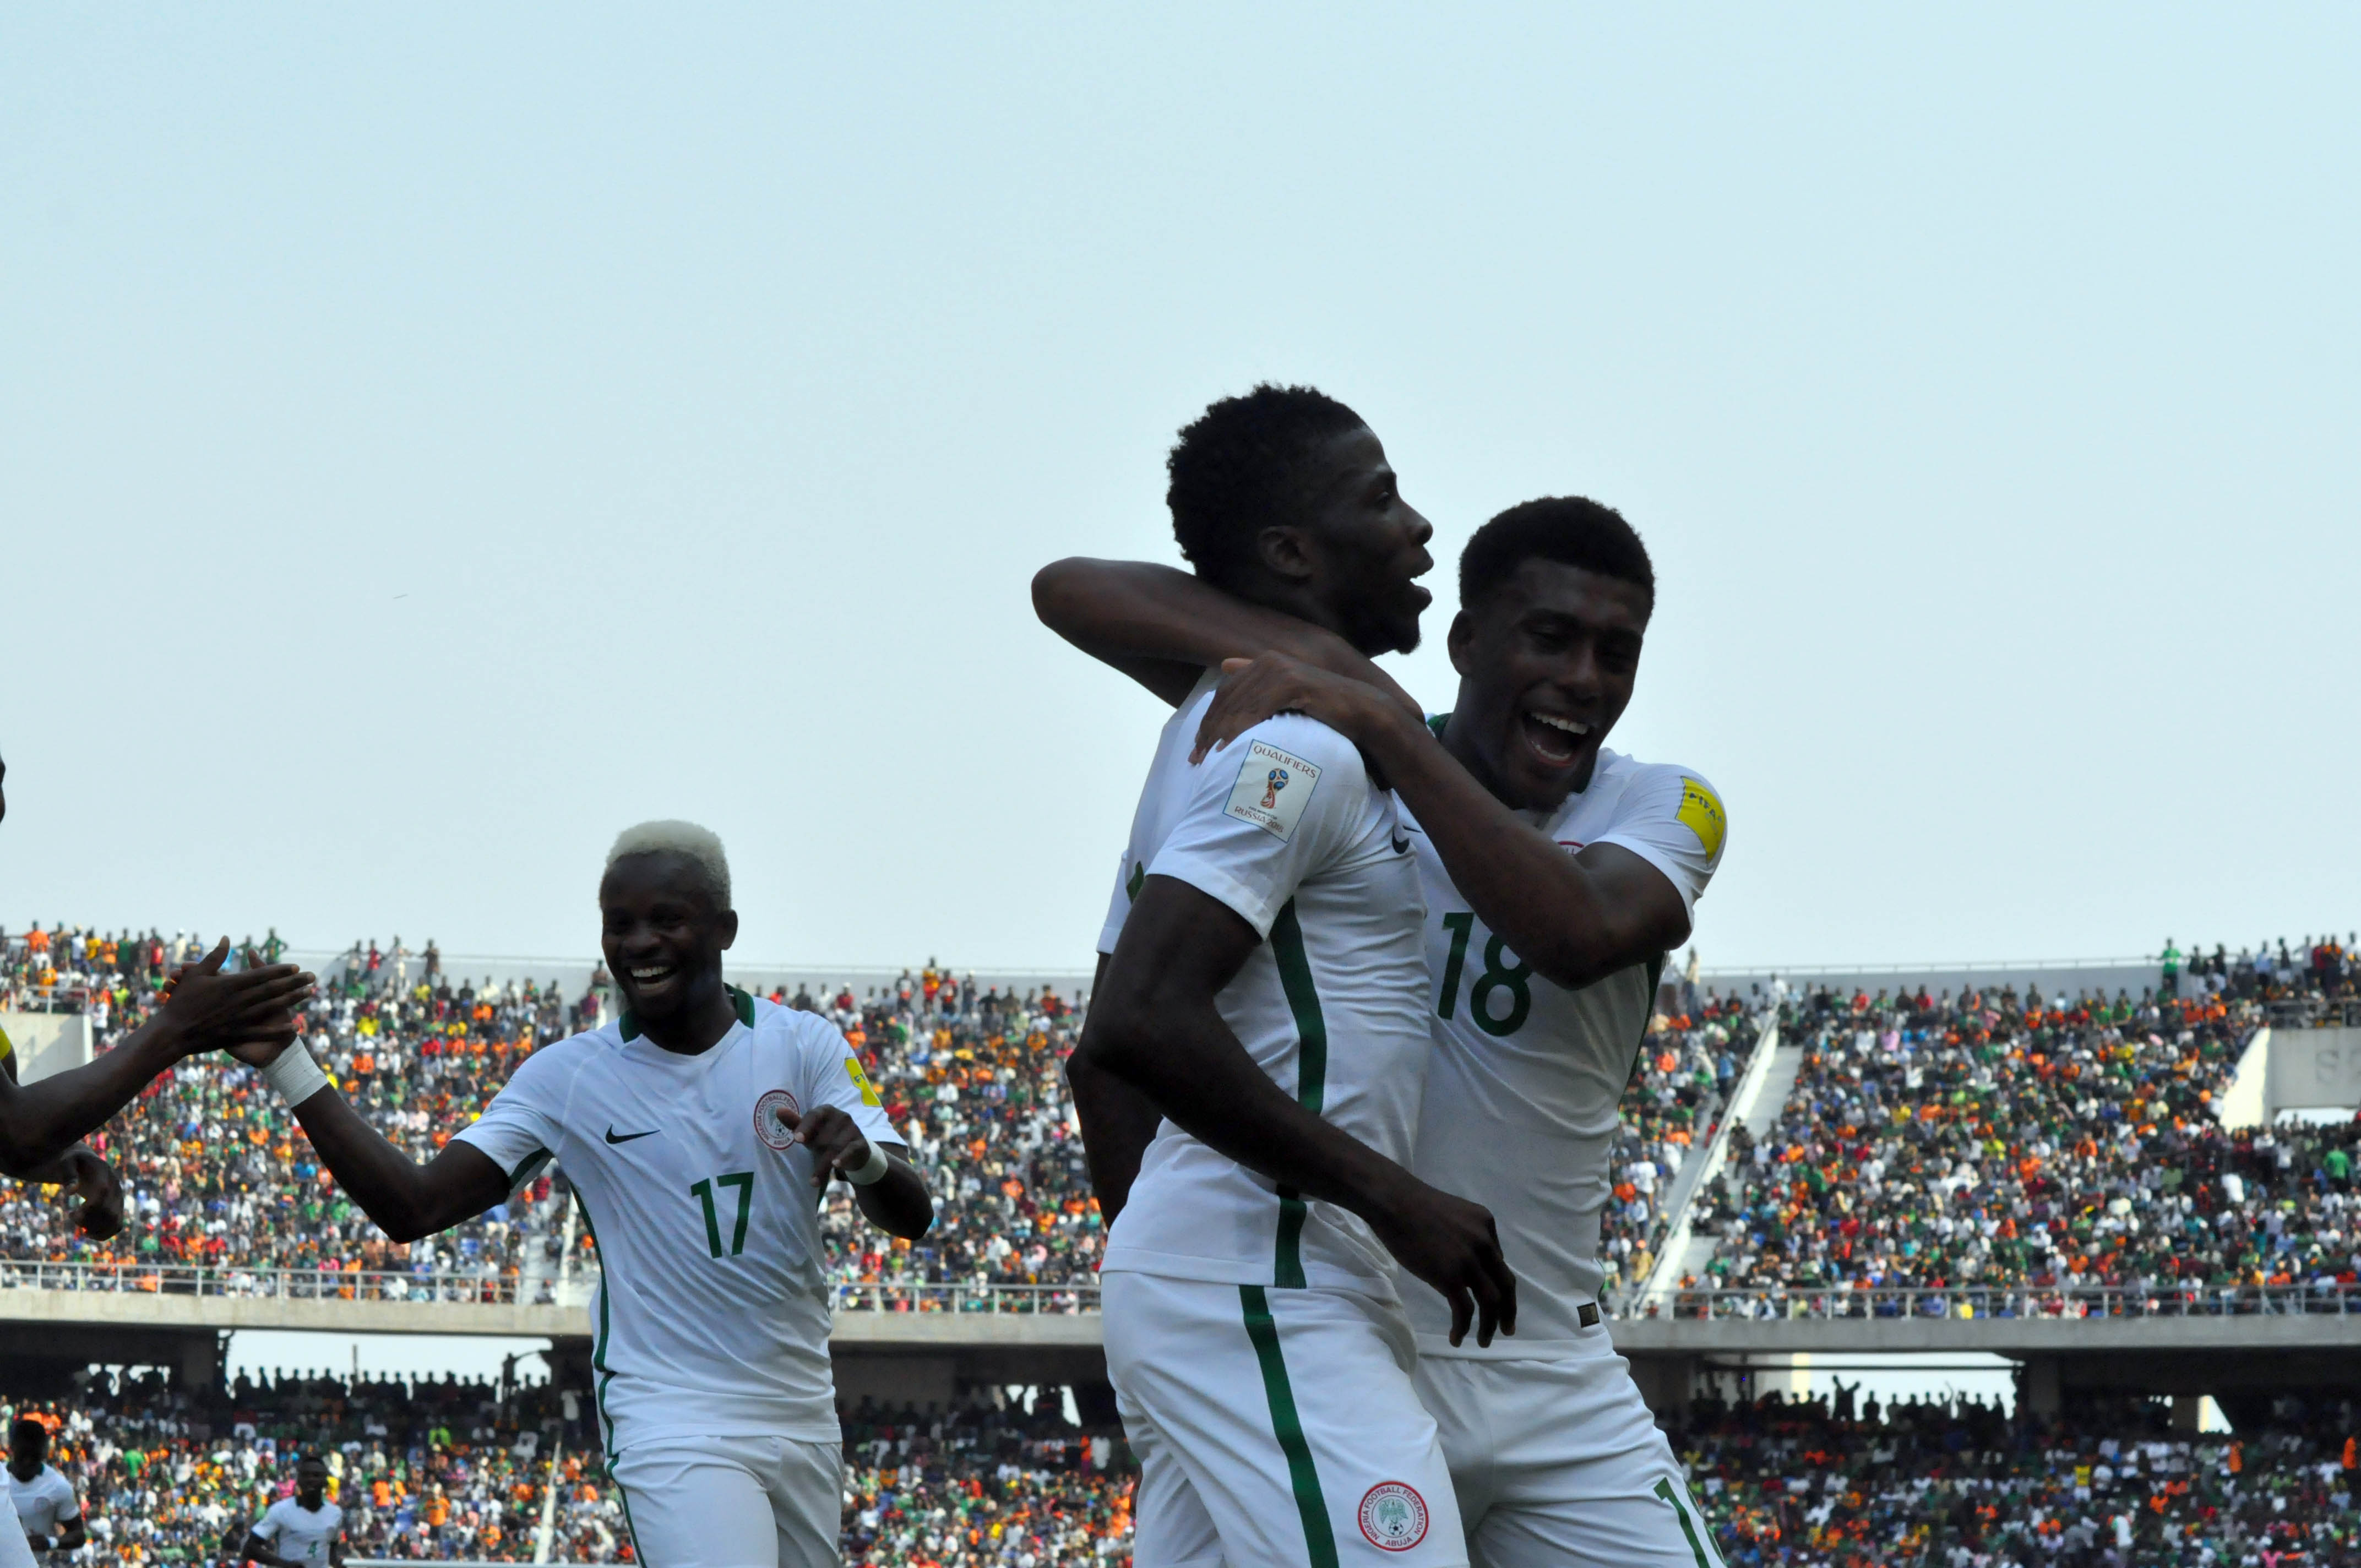 Iwobi and Iheanacho celebrate a goal in the National team